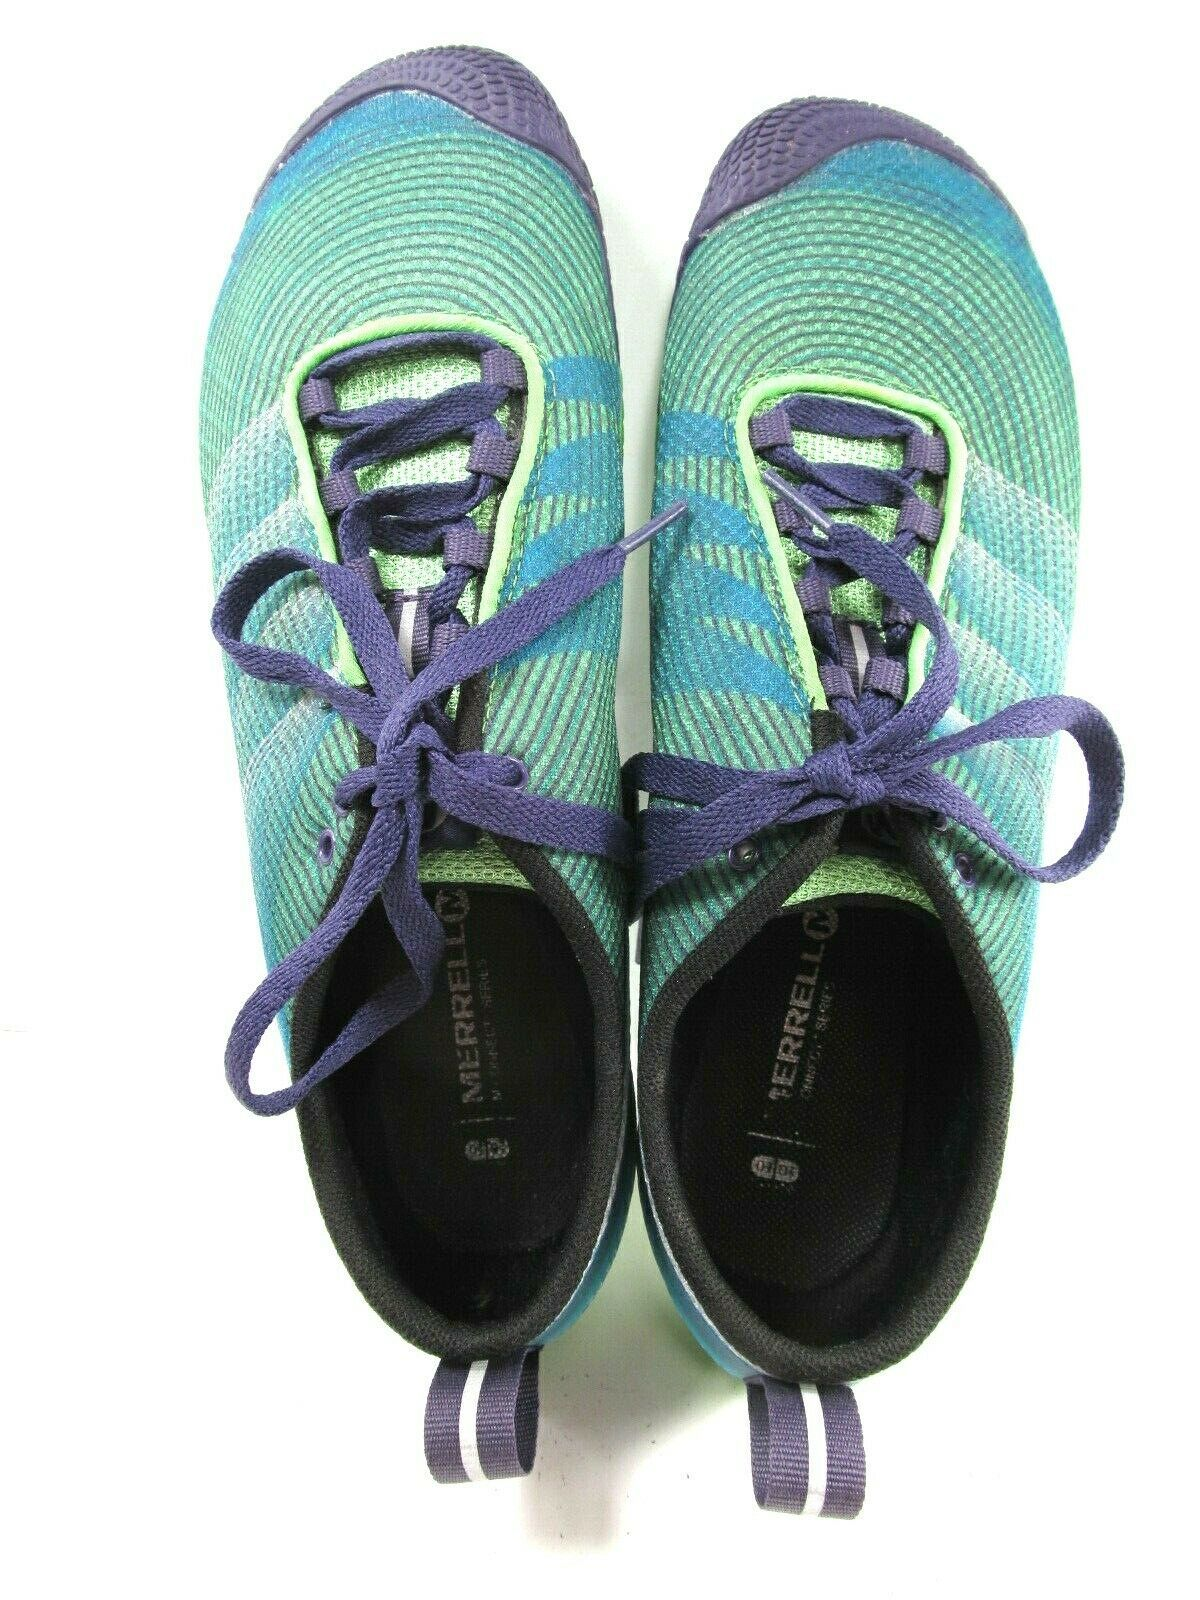 Merrell M Connect Womens Vapor Glove 2 Shoes Bright Green And Purple Size US 10 image 8